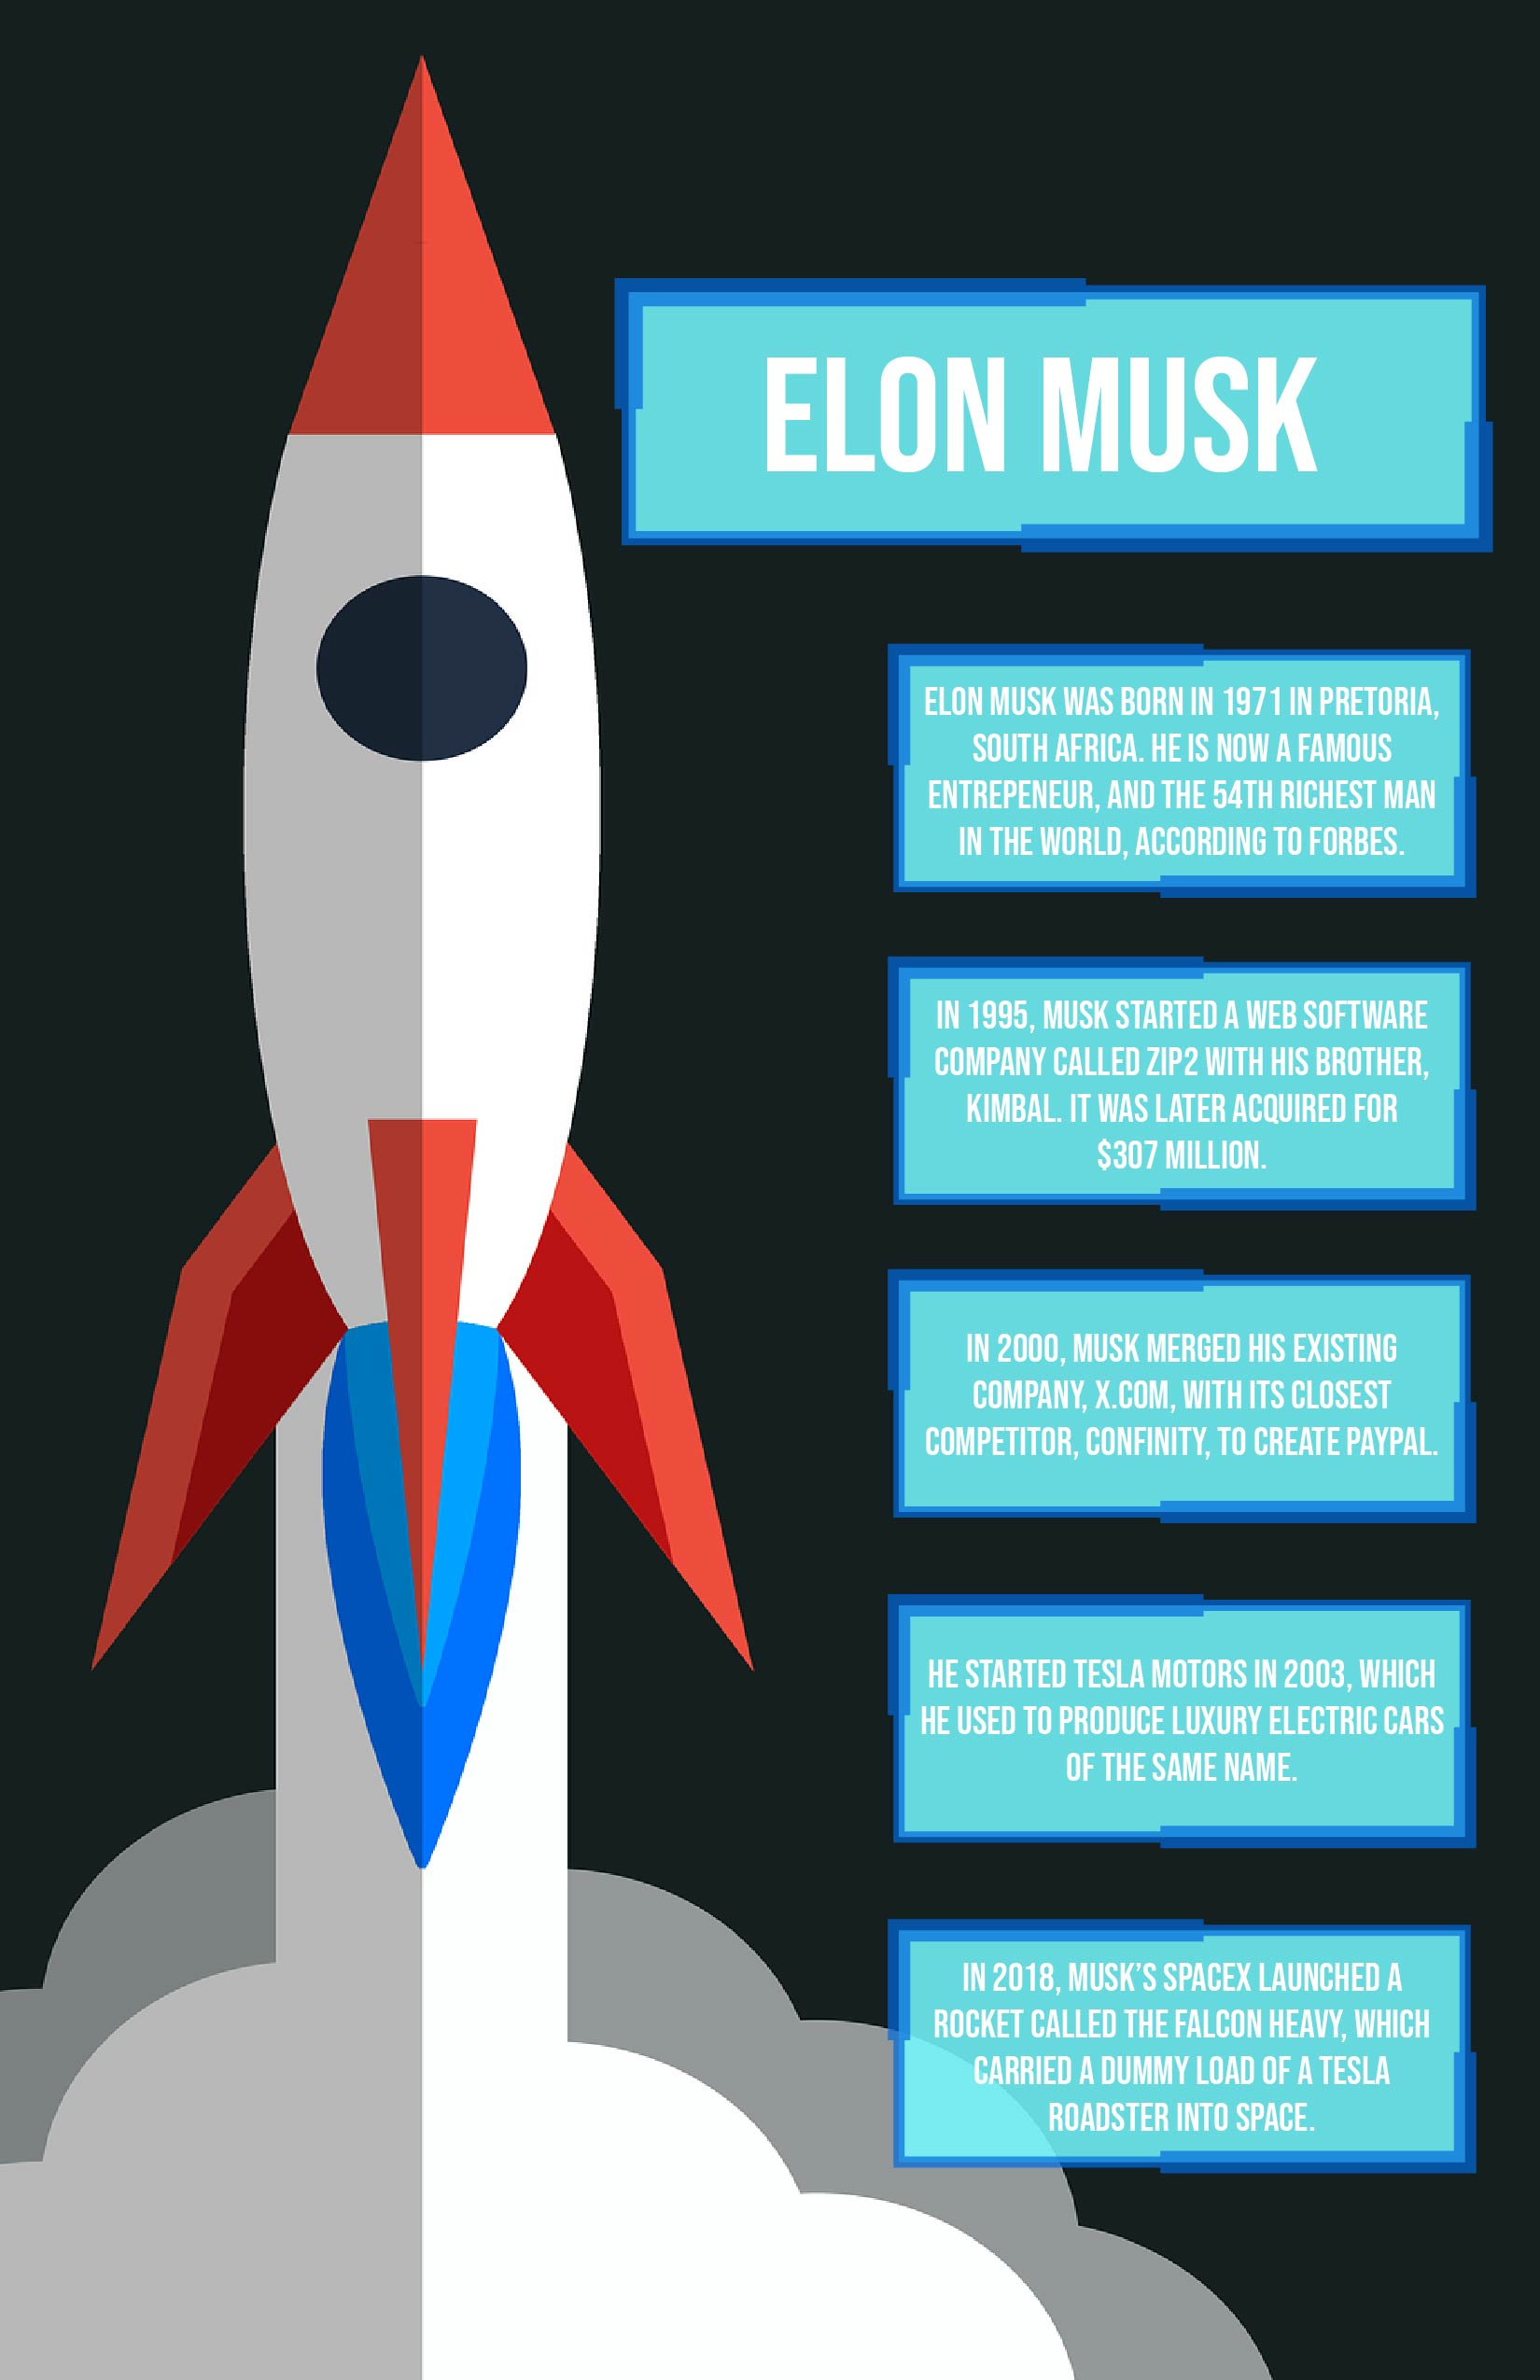 Facts about Elon Musk.